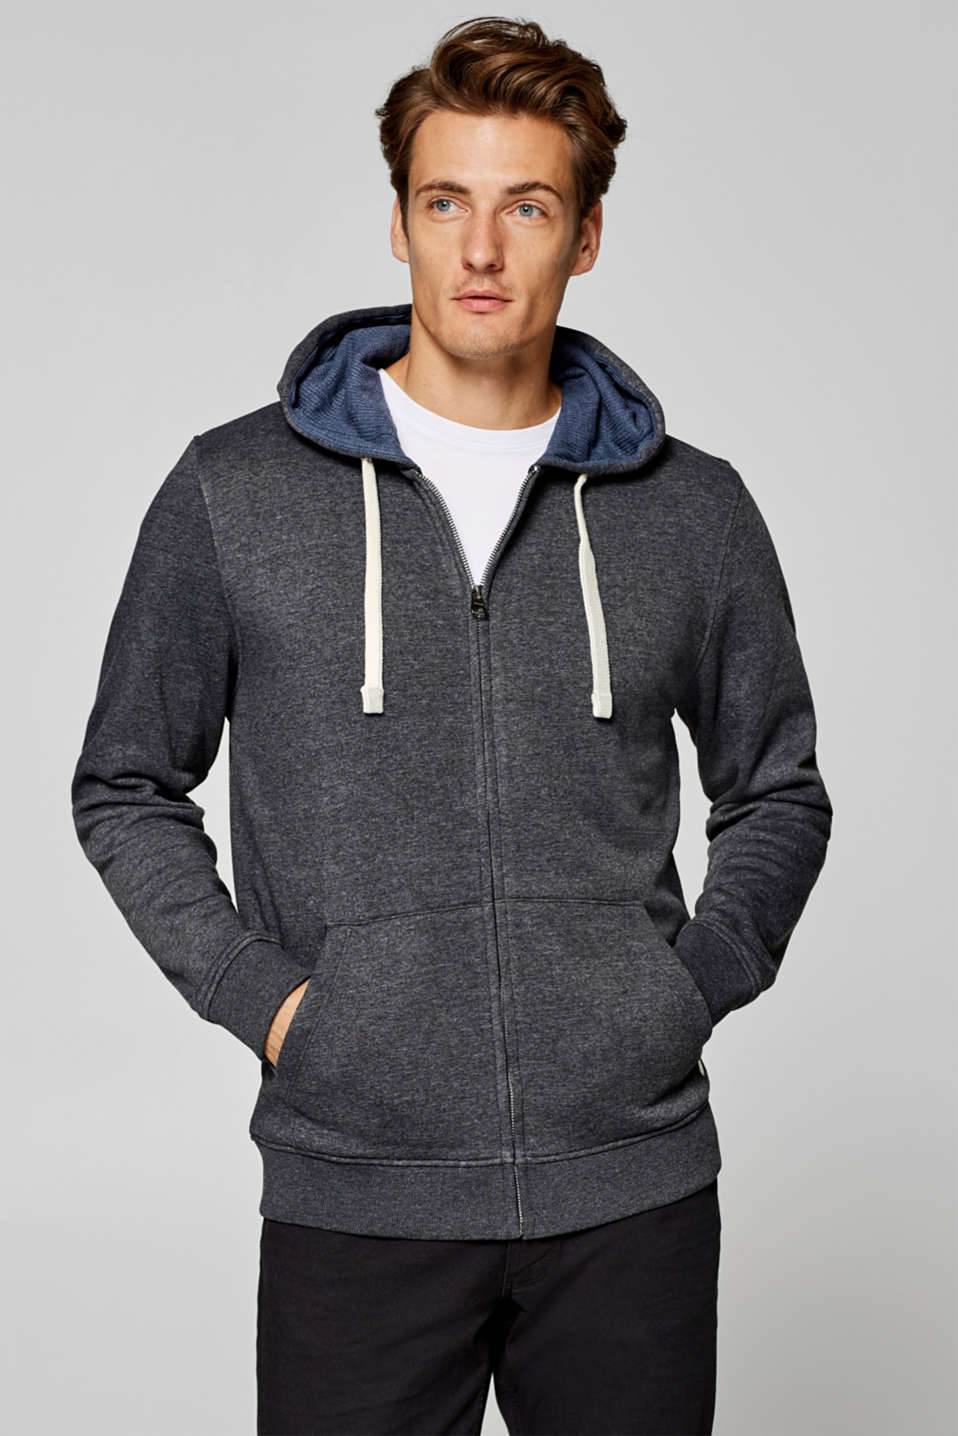 Esprit - Hooded cardigan containing organic cotton